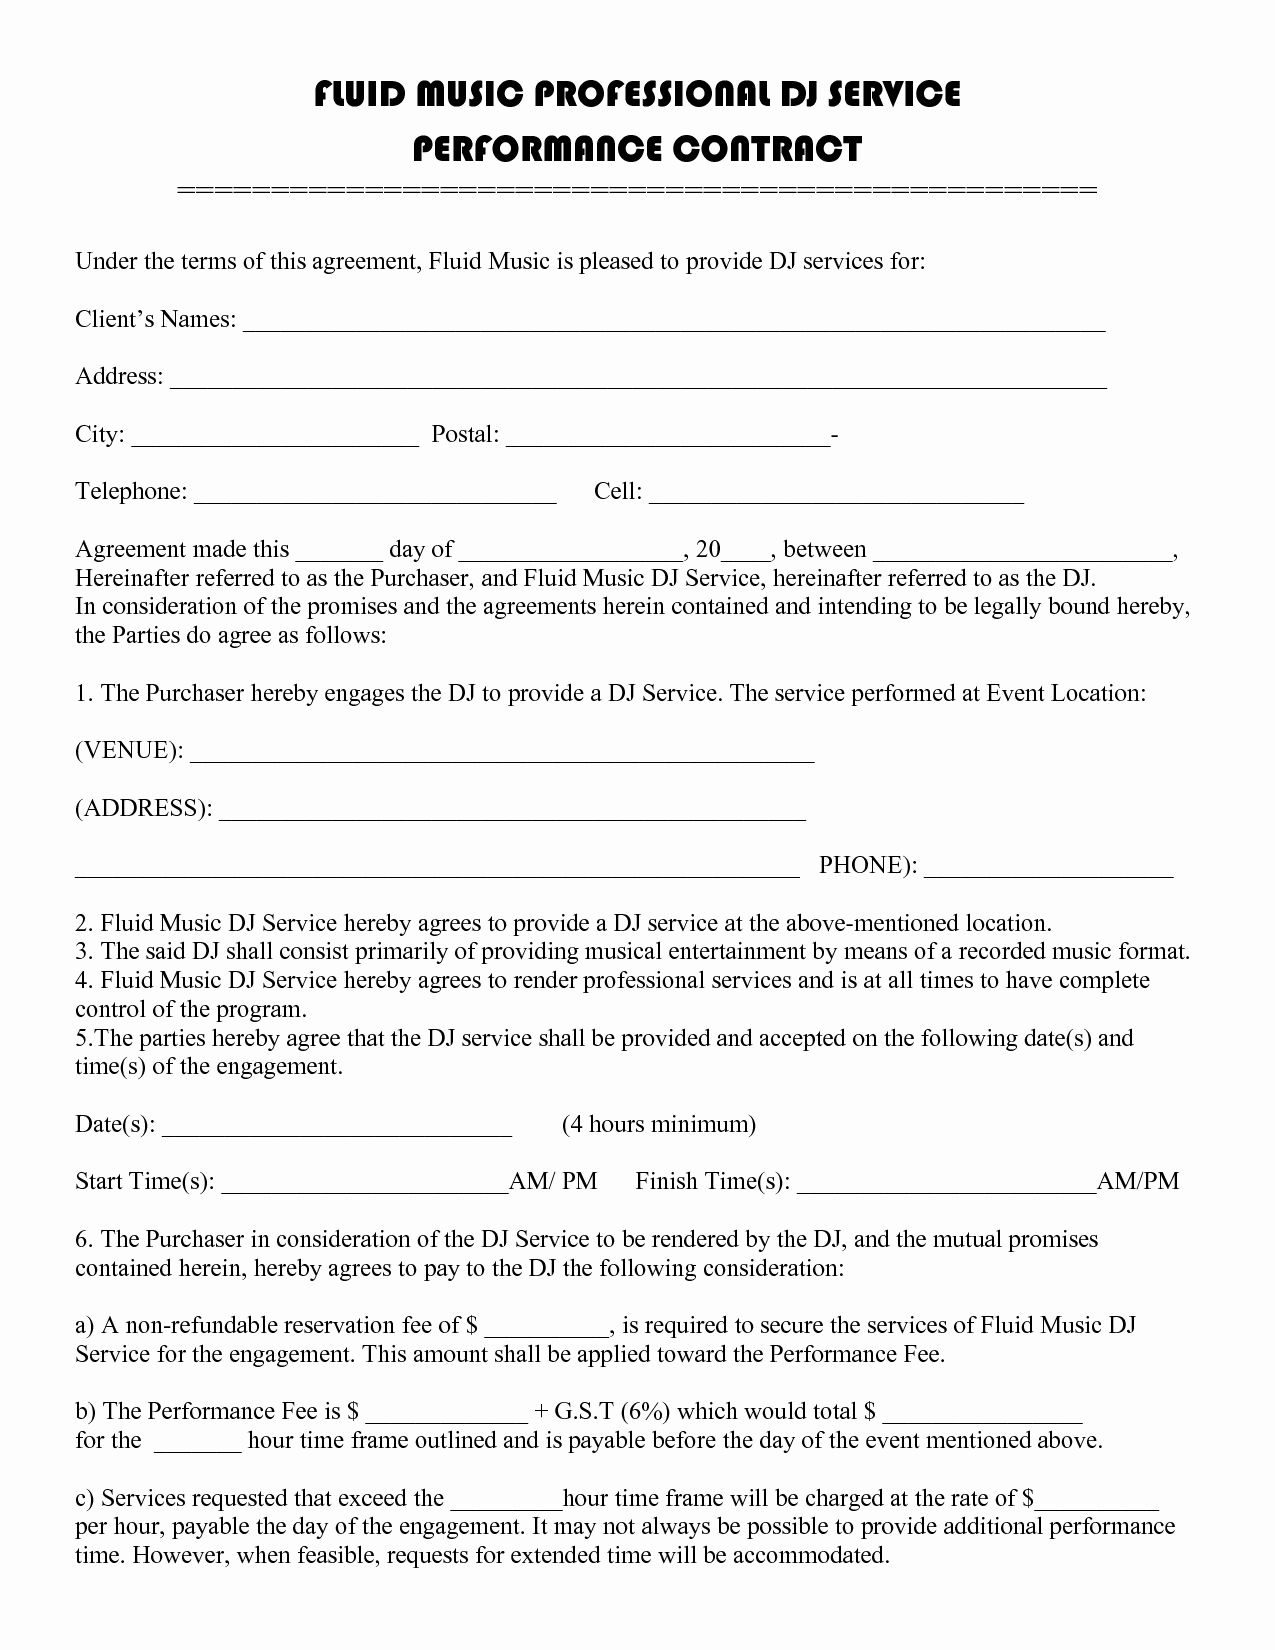 Artist Performance Contract Template in 2020 Contract